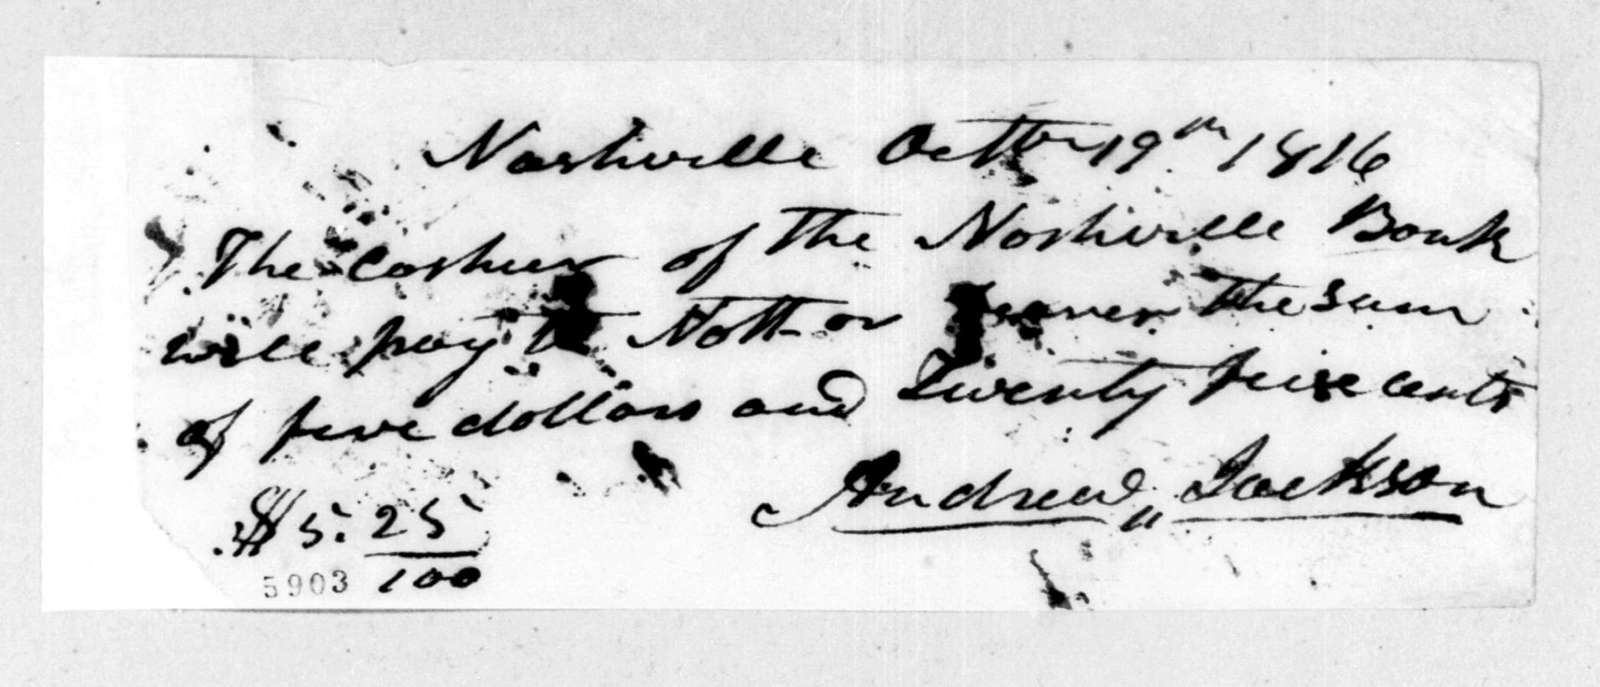 Andrew Jackson to Nashville Bank, October 19, 1816